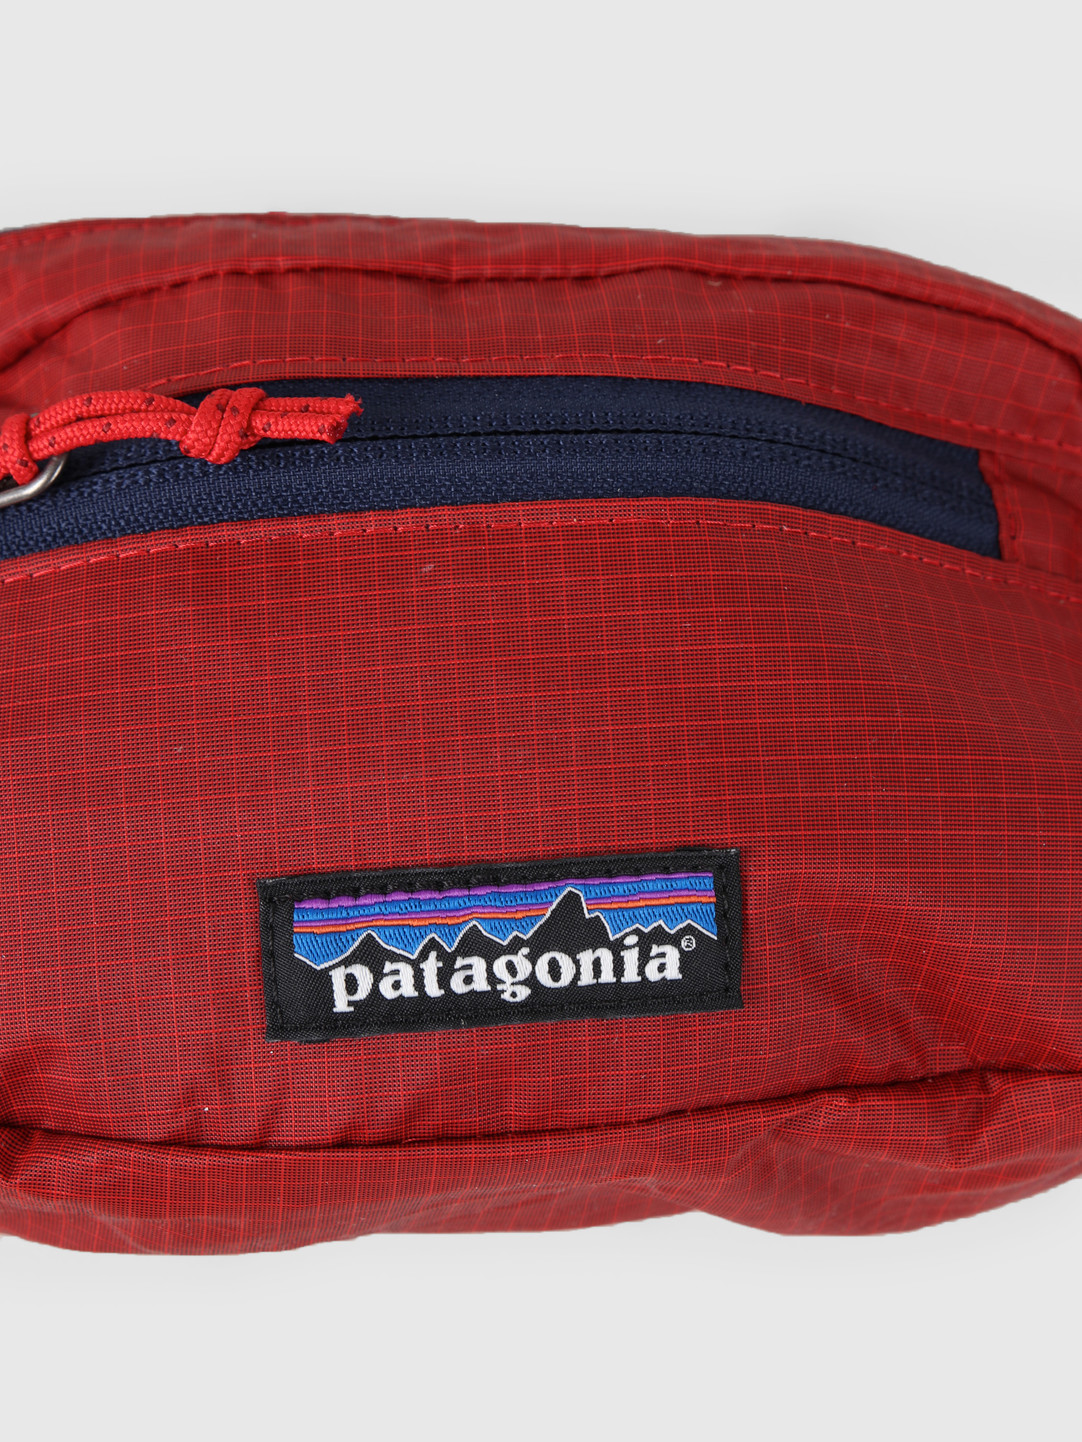 Patagonia Patagonia Ultralight Black Hole Mini Hip Pack Rincon Red 49447